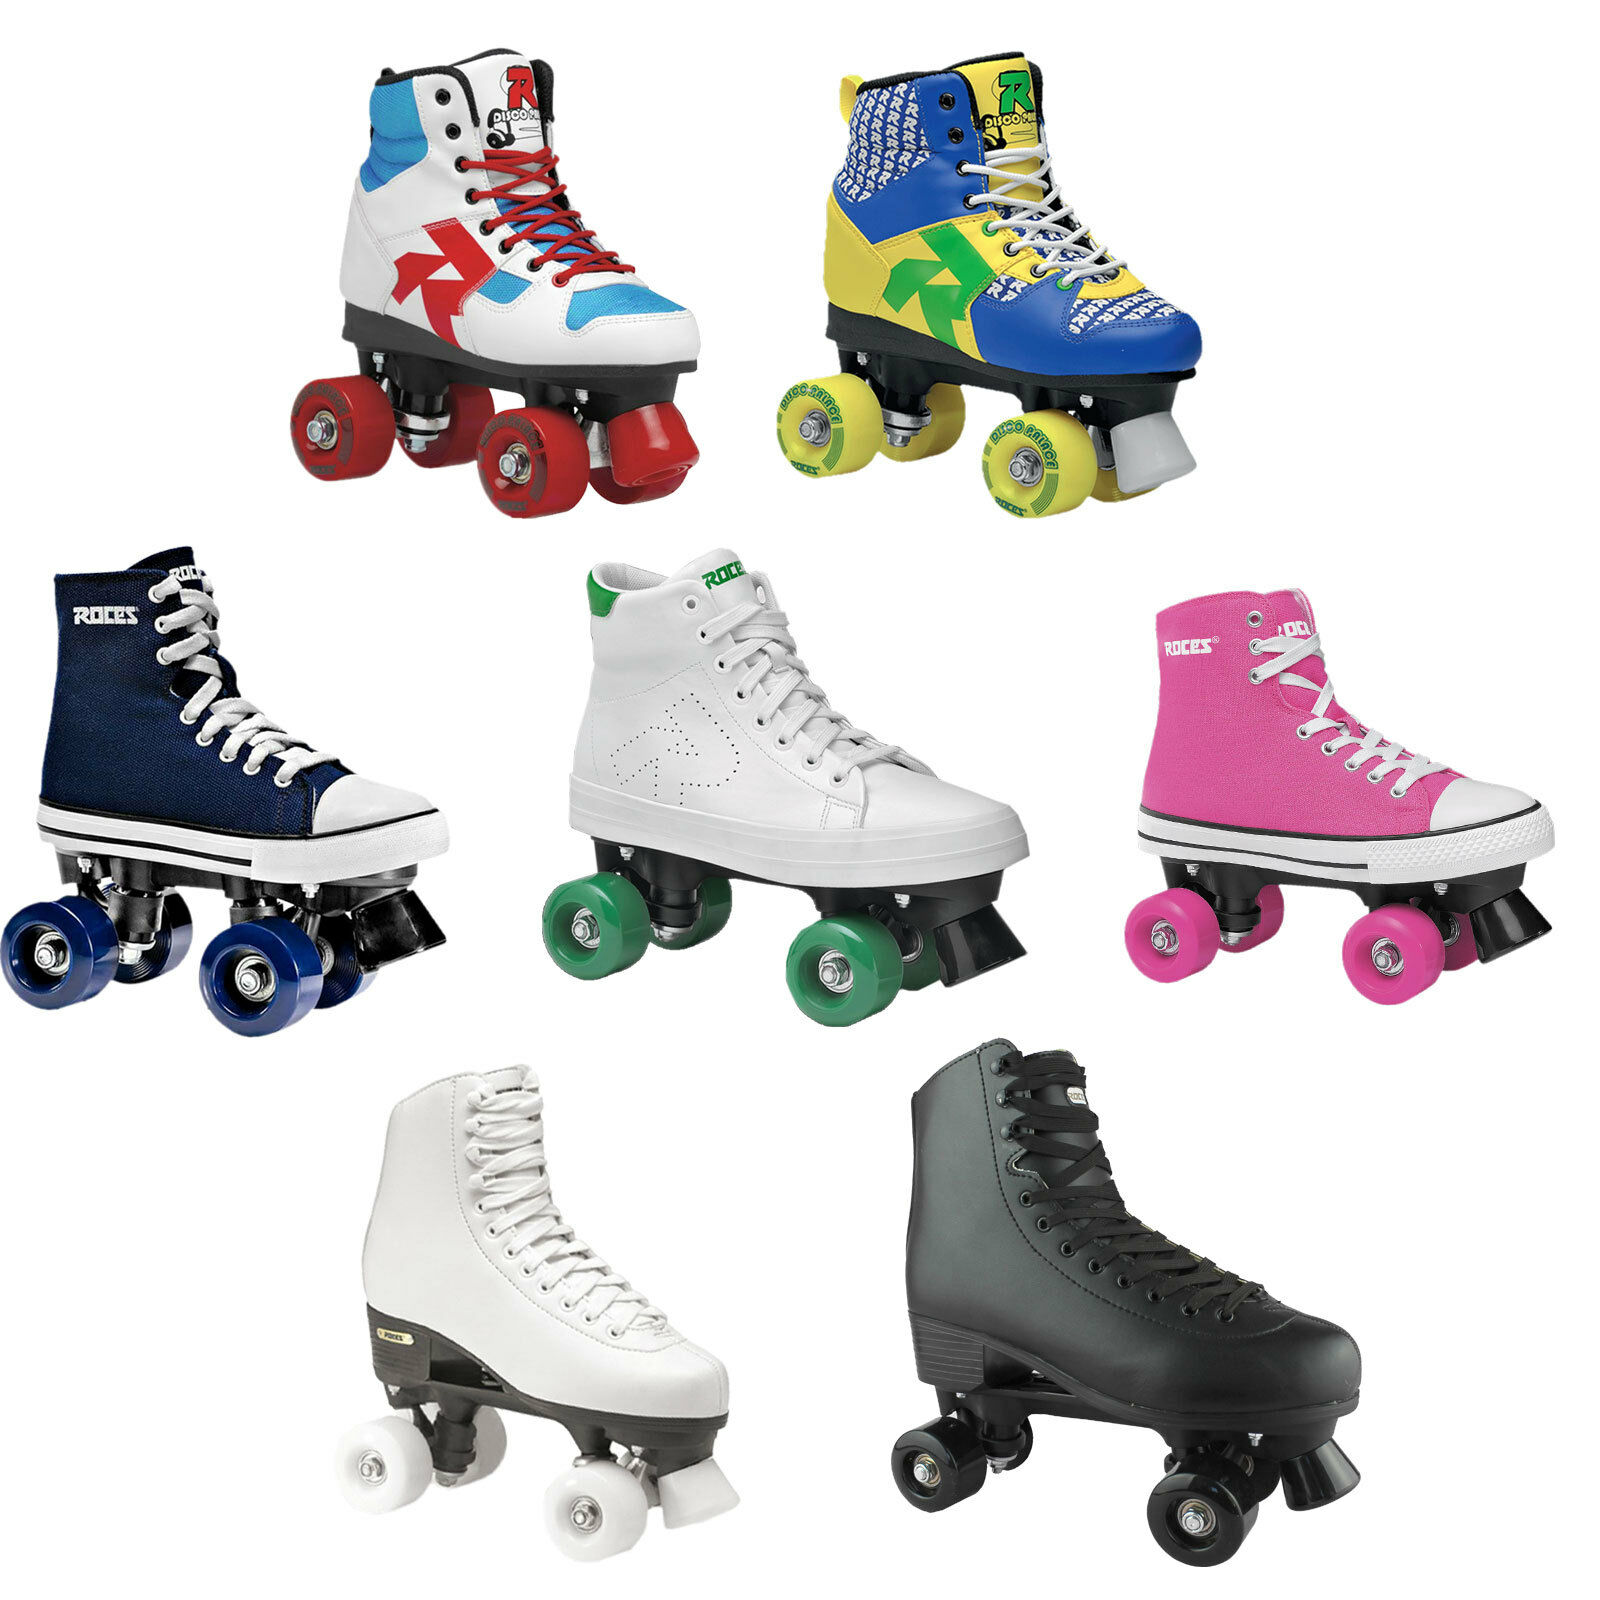 roces rollerskates quad roller skates rollschuhe eur 69. Black Bedroom Furniture Sets. Home Design Ideas